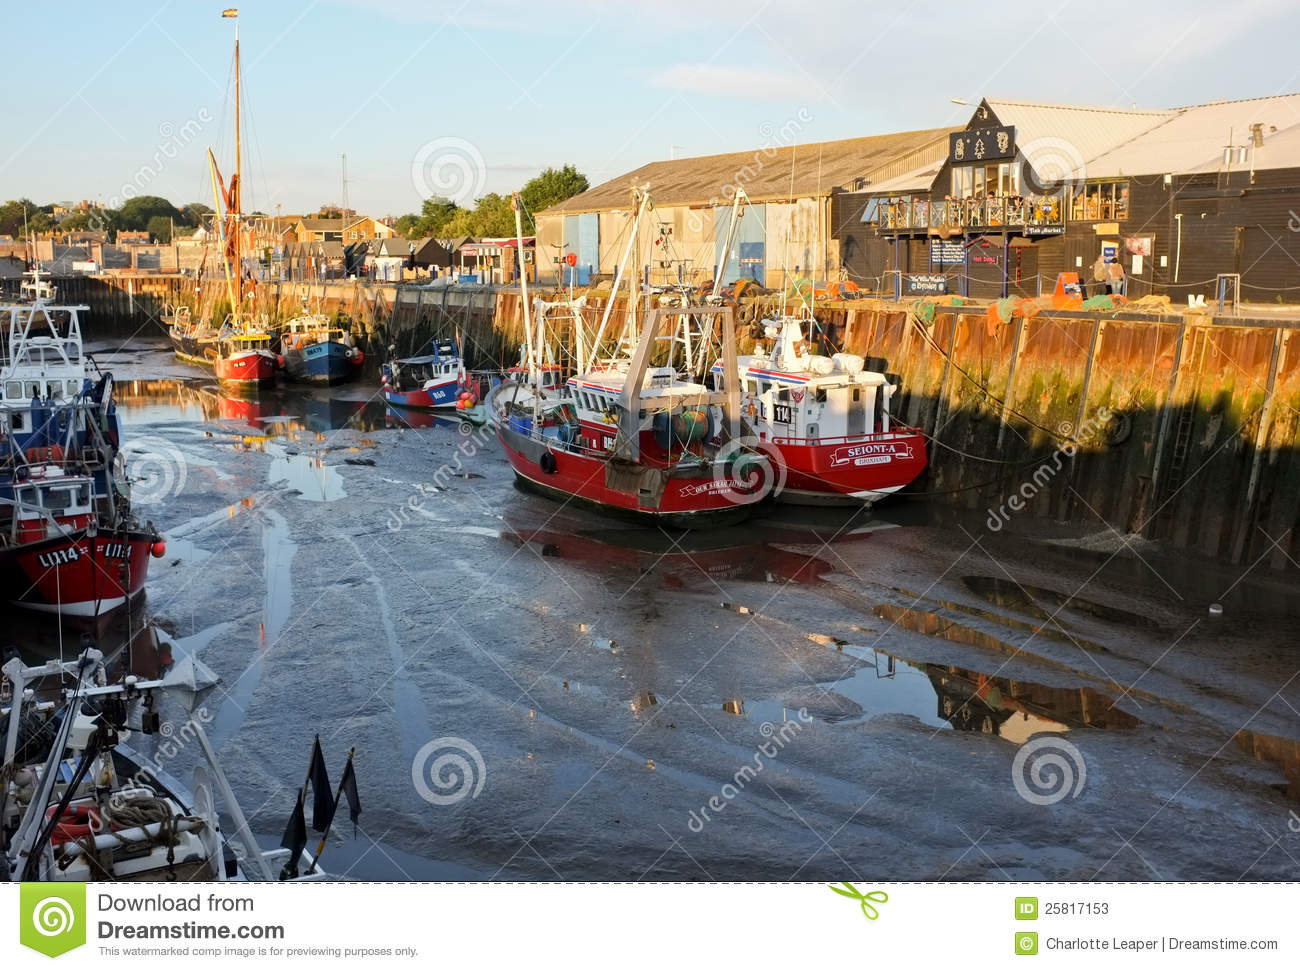 Whitstable Harbour & Fishing Boats, Kent, England